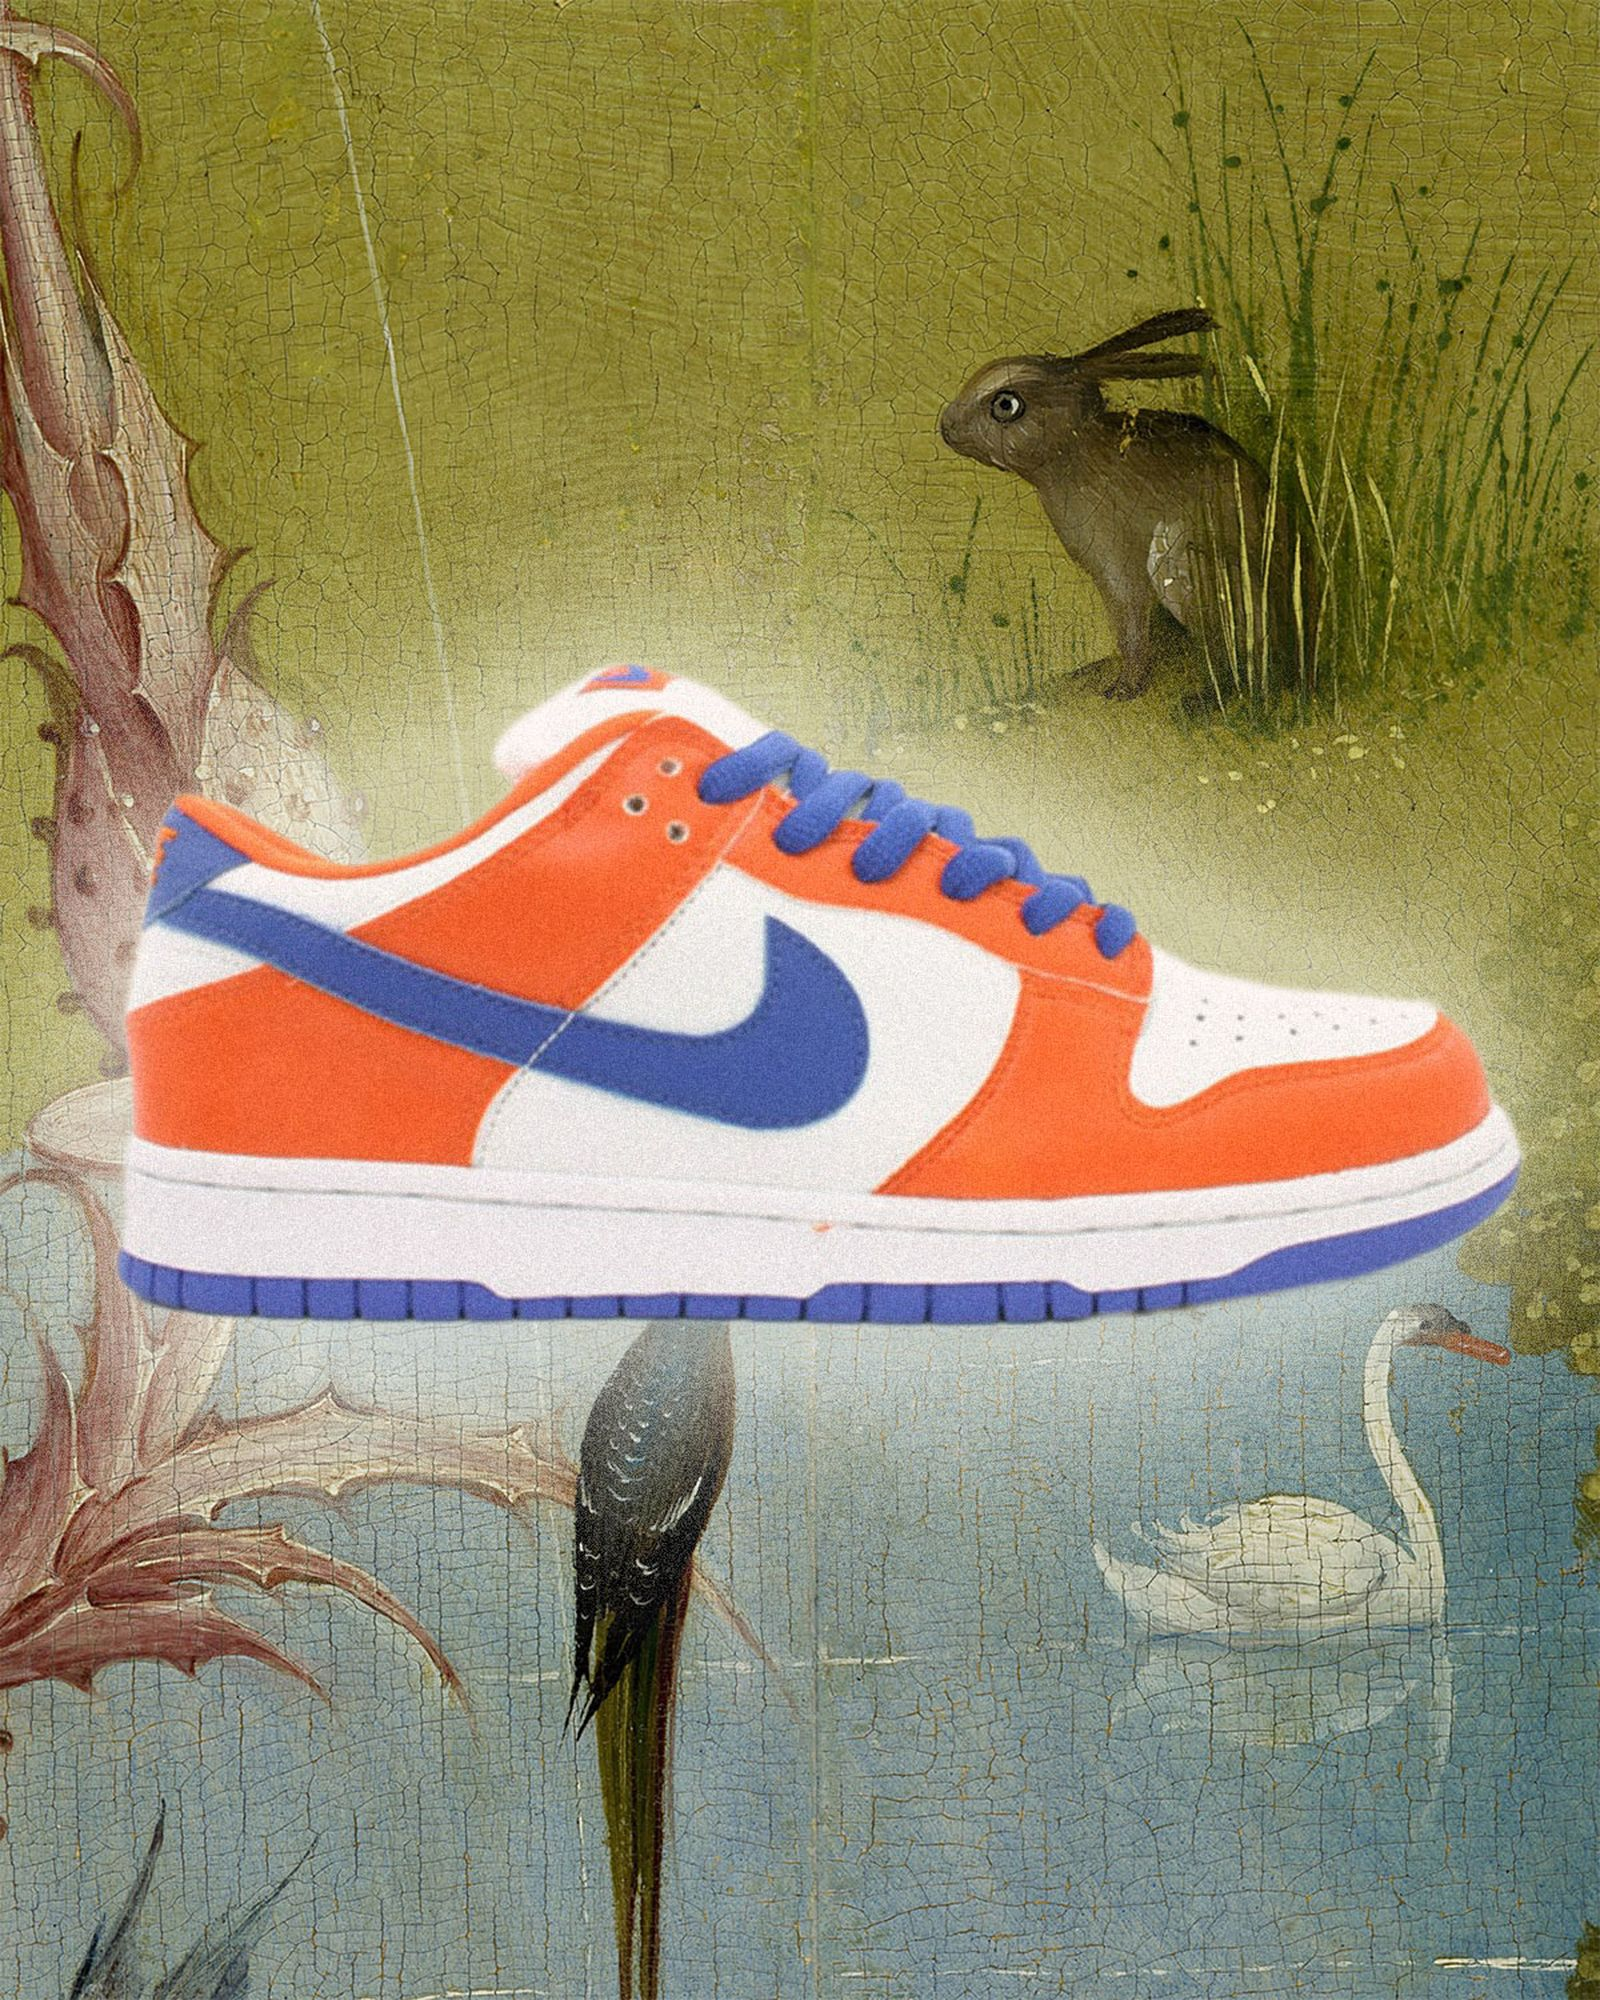 Nike-SB-Dunk-Low-Danny-Supa